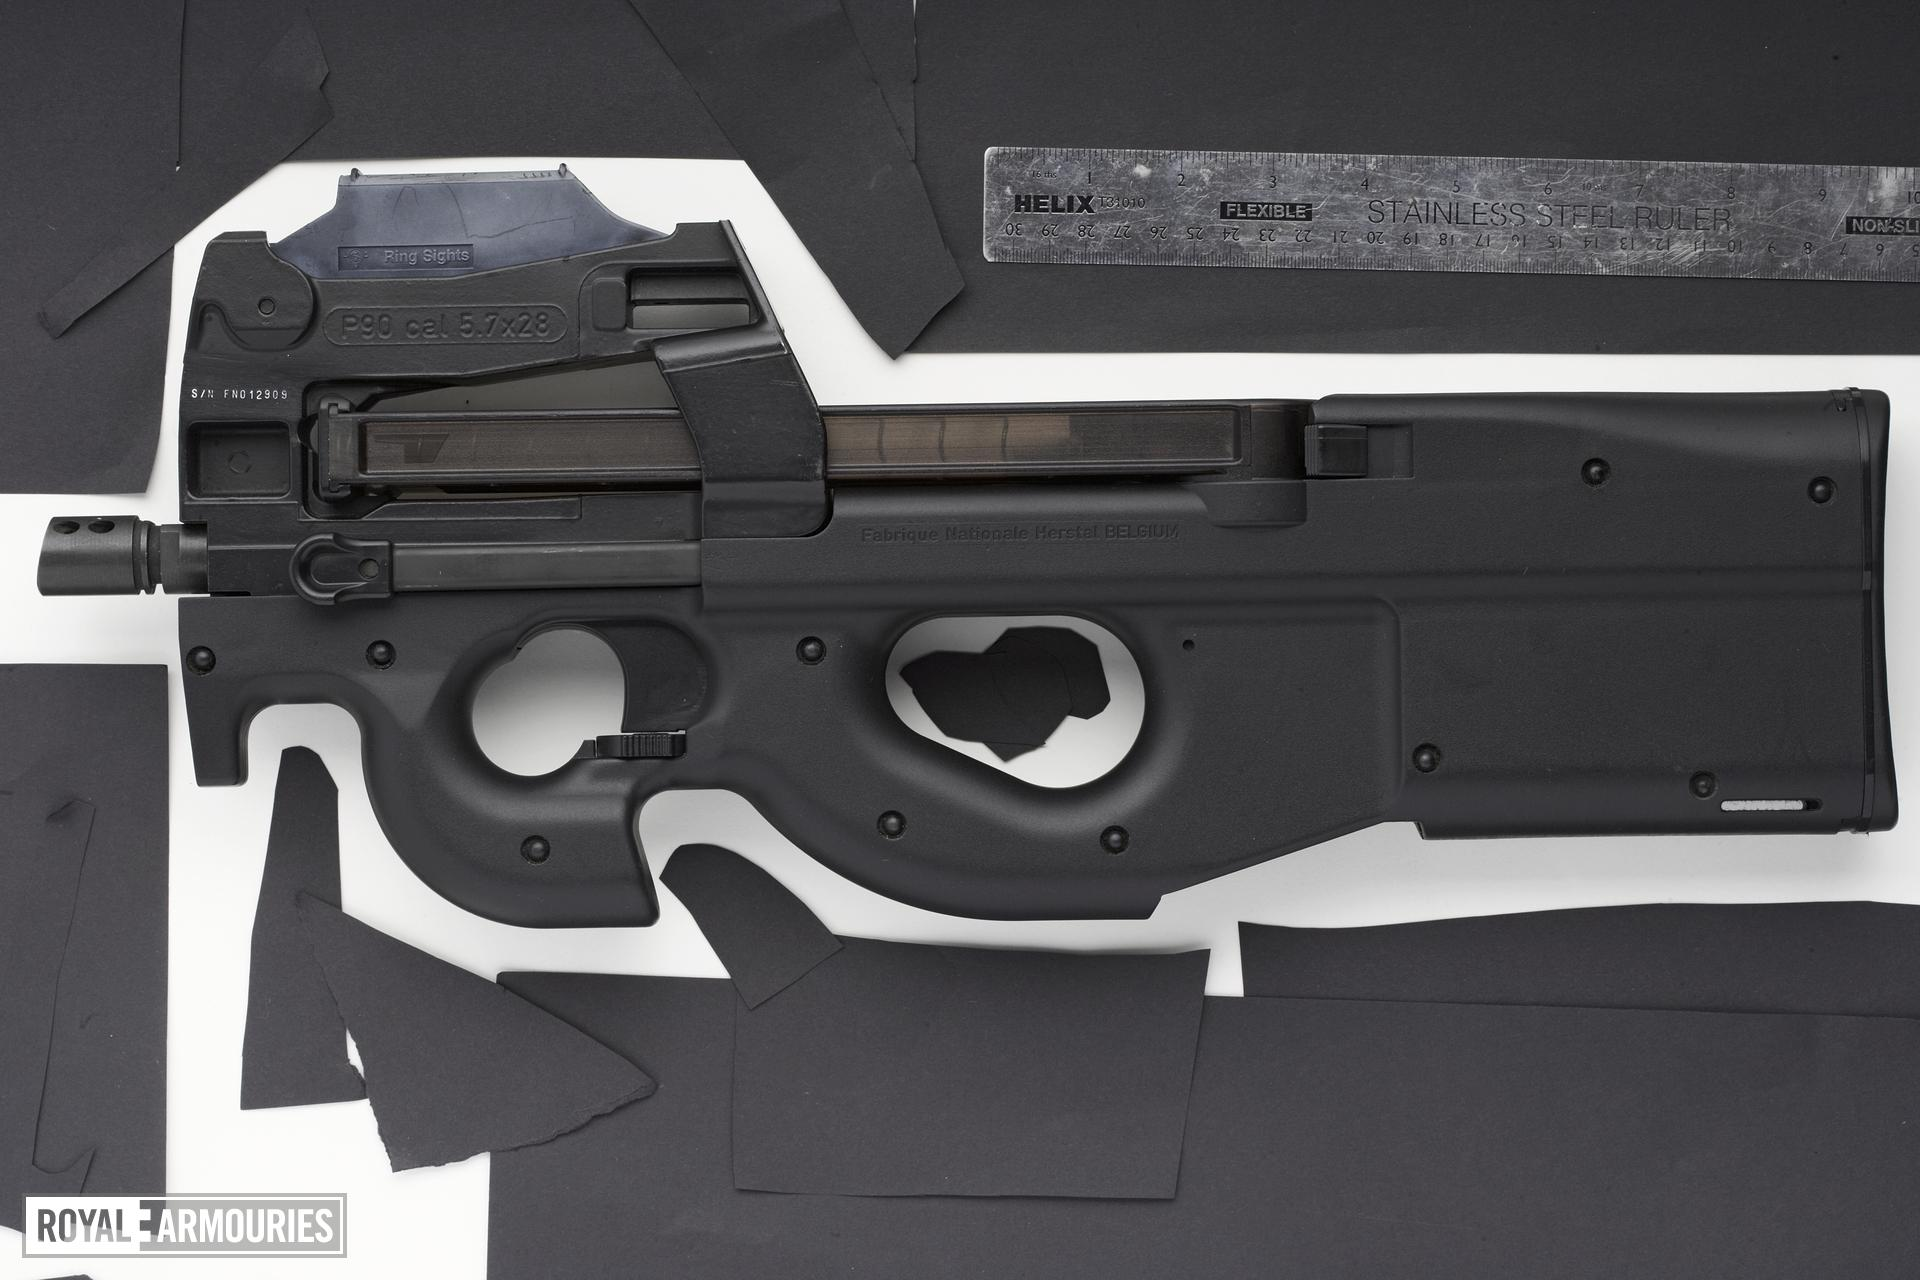 Centrefire automatic submachine gun - FN P90 Personal Defence Weapon (PDW)